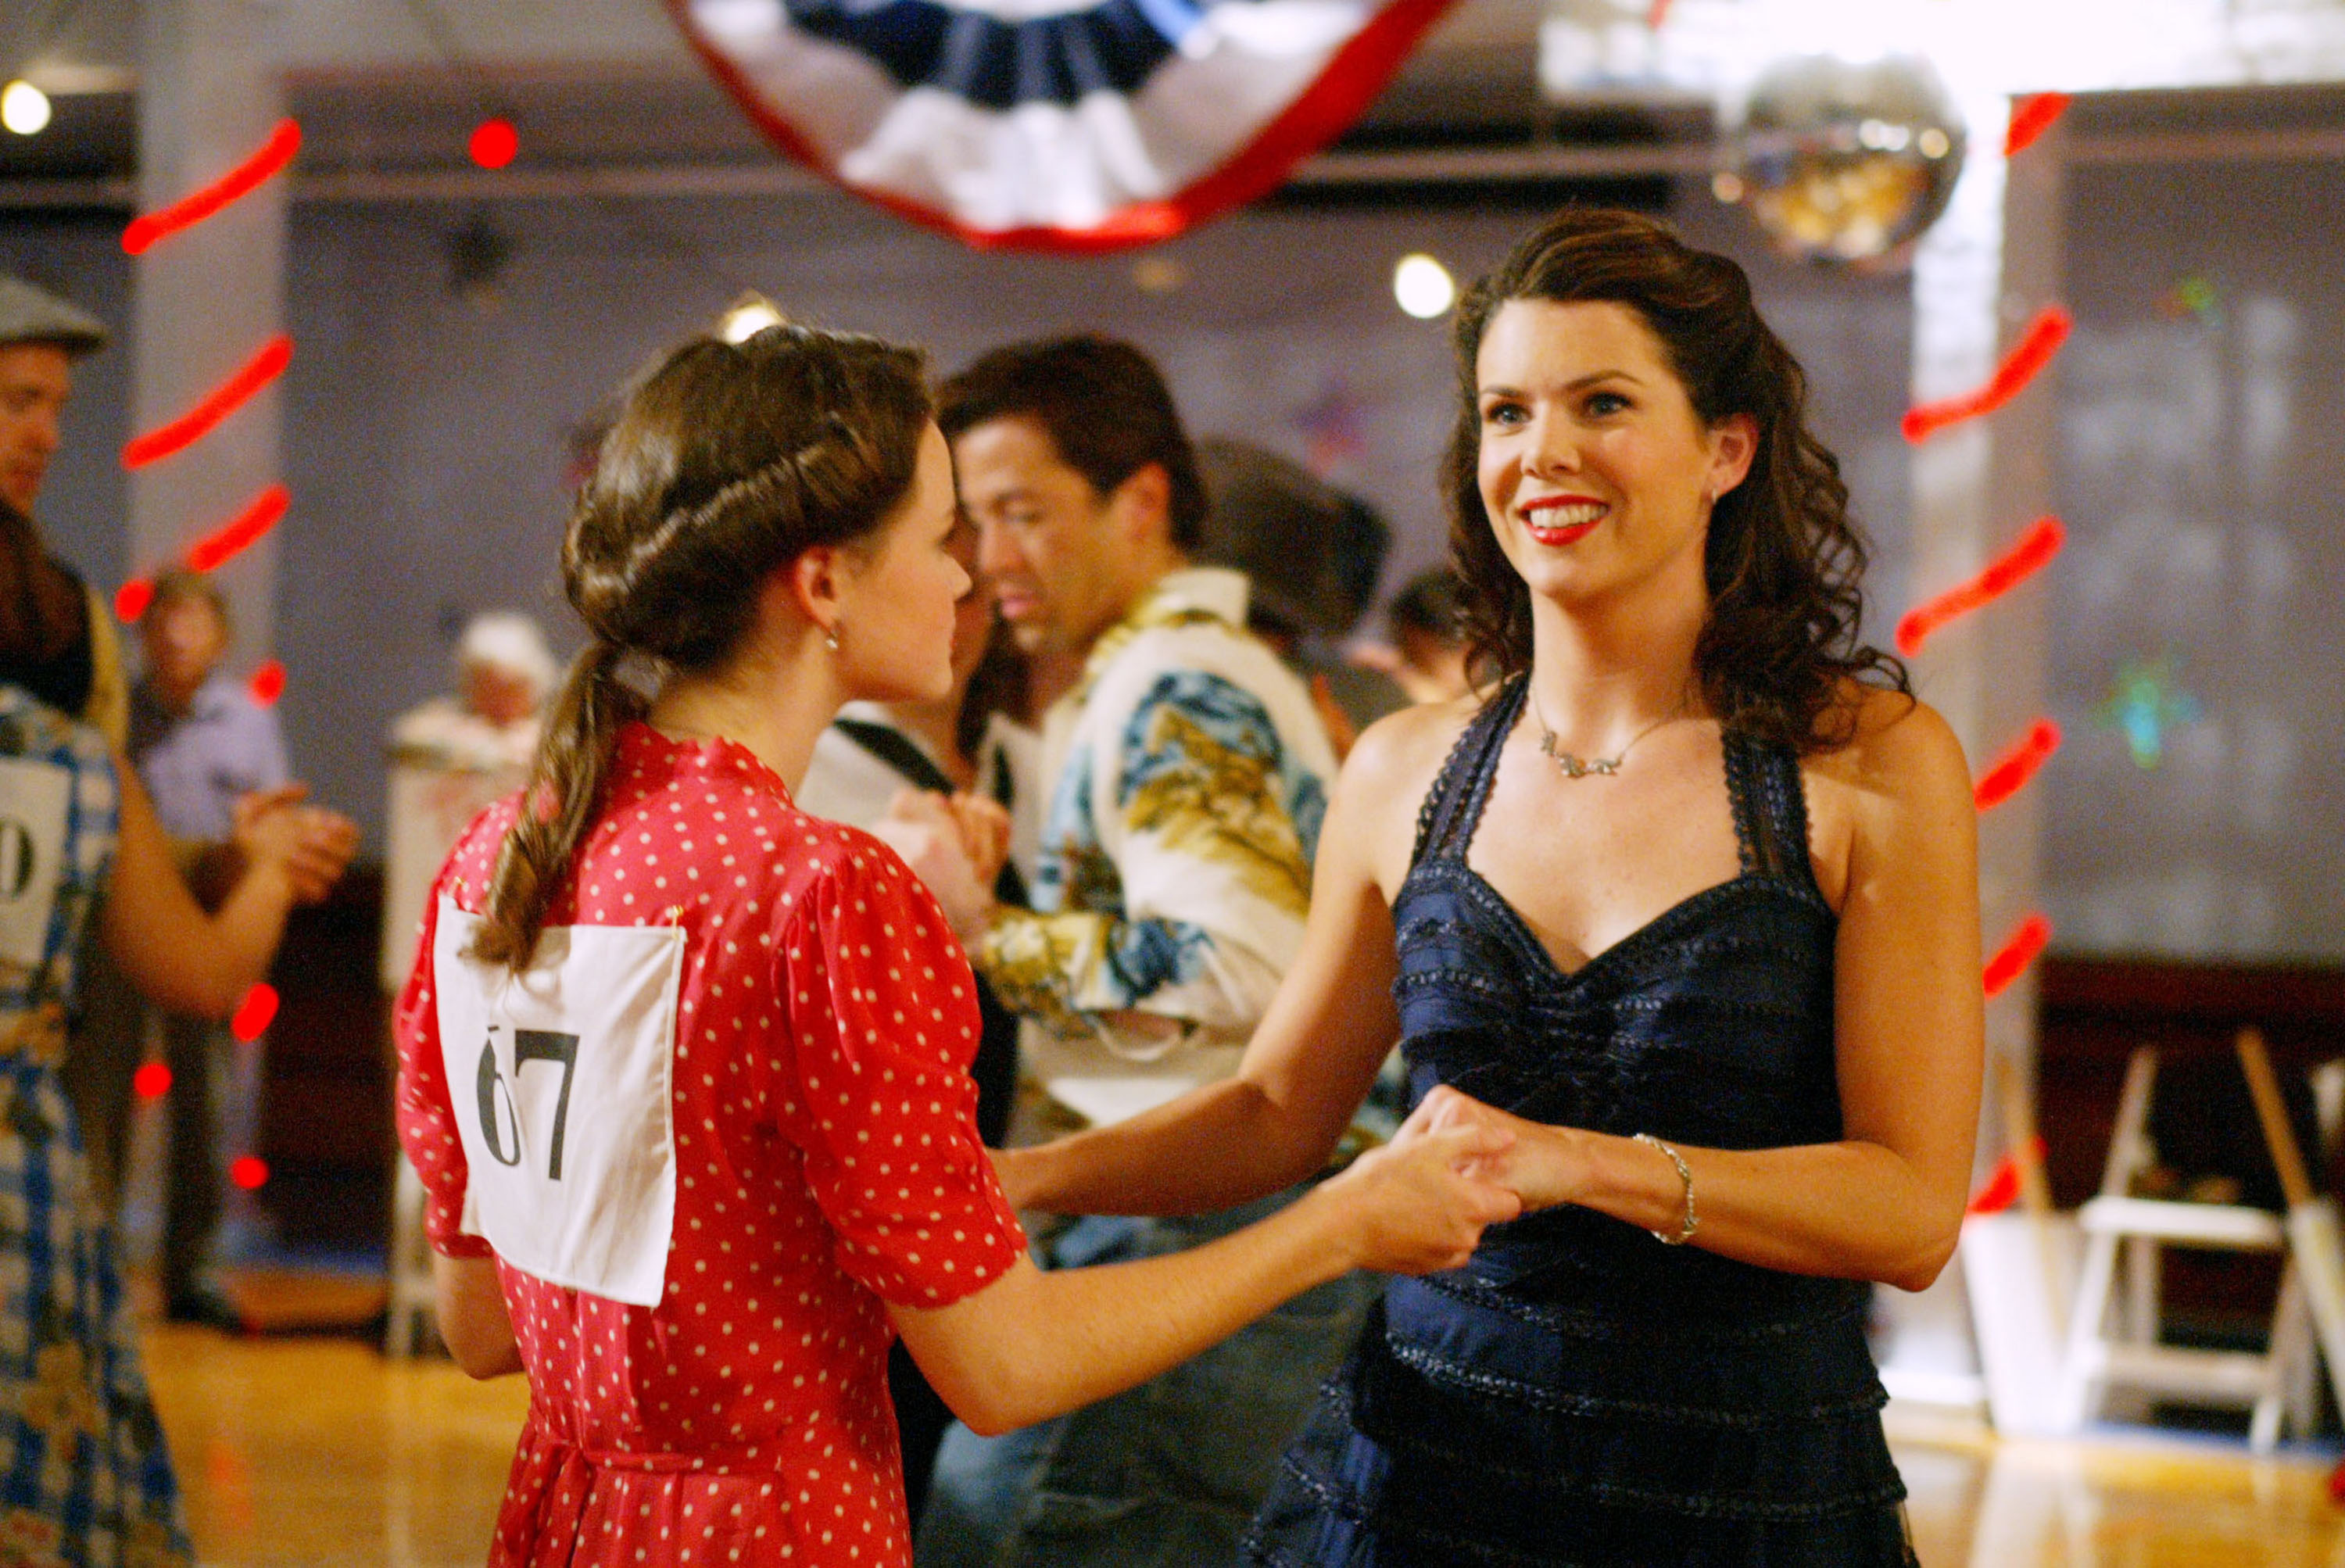 Rory-and-Lorelai-Dancing-They-Shoot-Gilmores-Dont-They-Gilmore-Girls